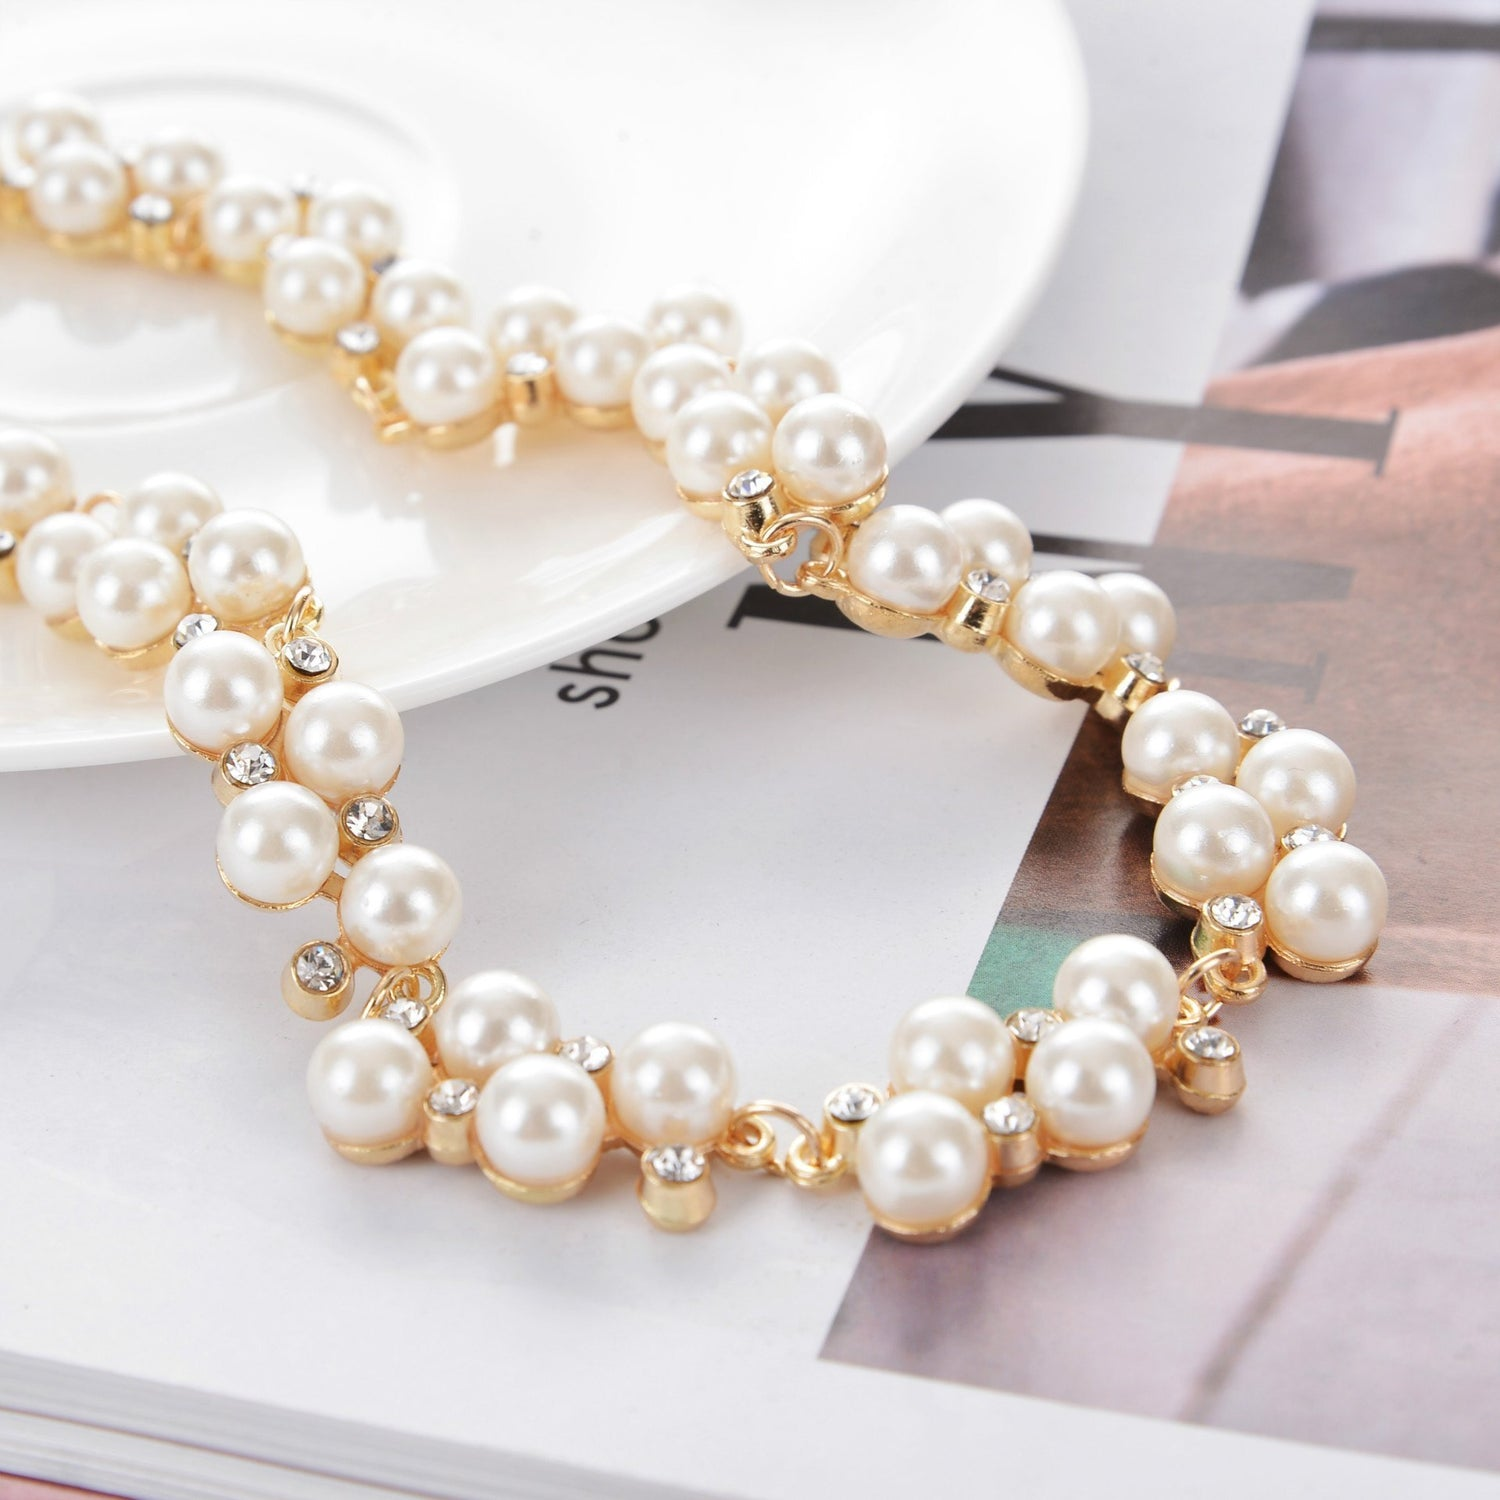 Necklace Kaia Pearls Gold-Costume Jewellery